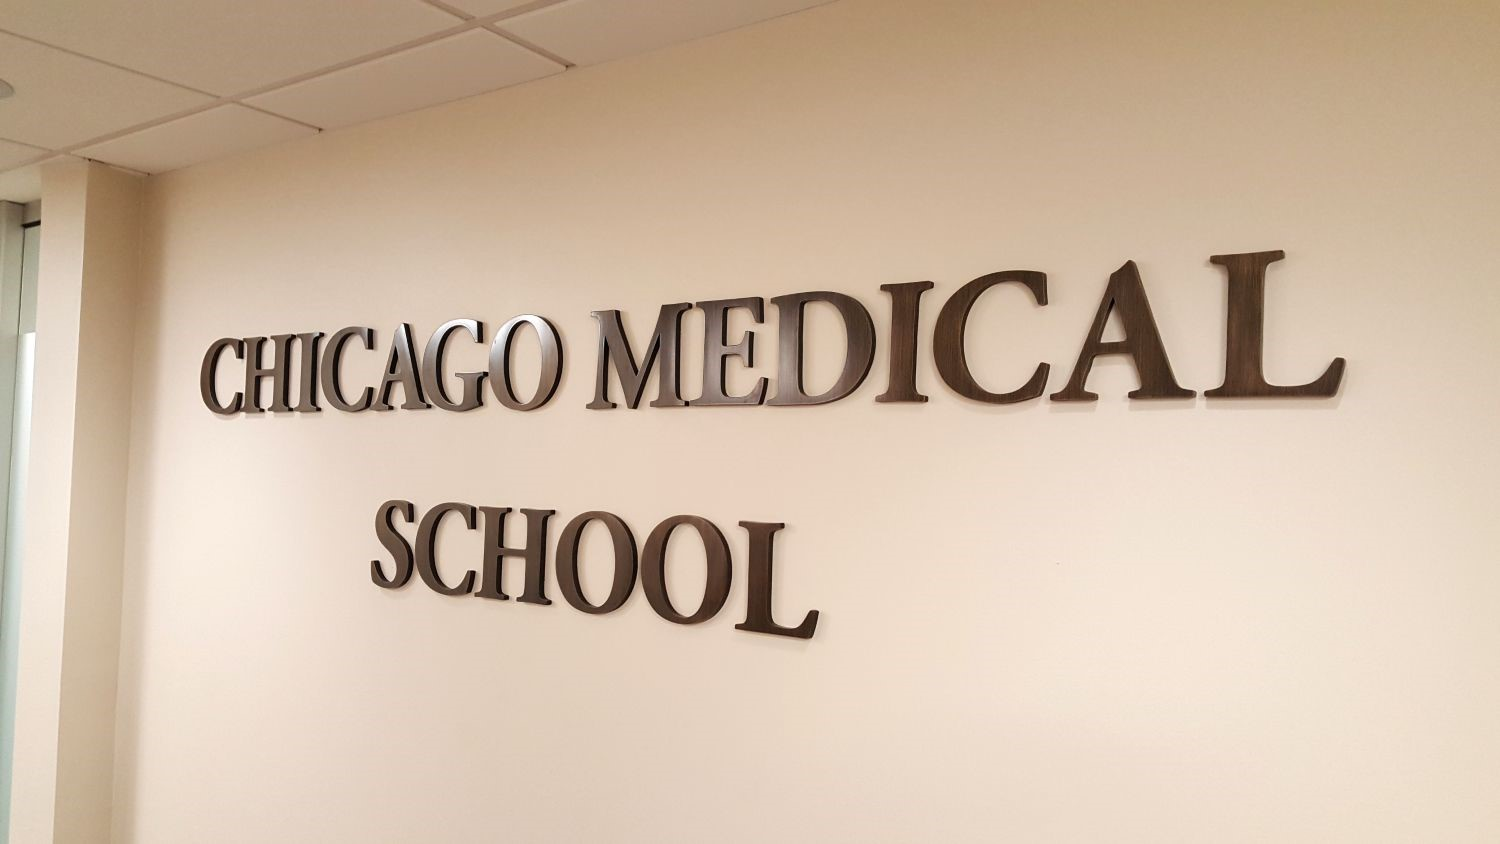 Reception cast bronze dimensional lettering on wall in North Chicago, IL